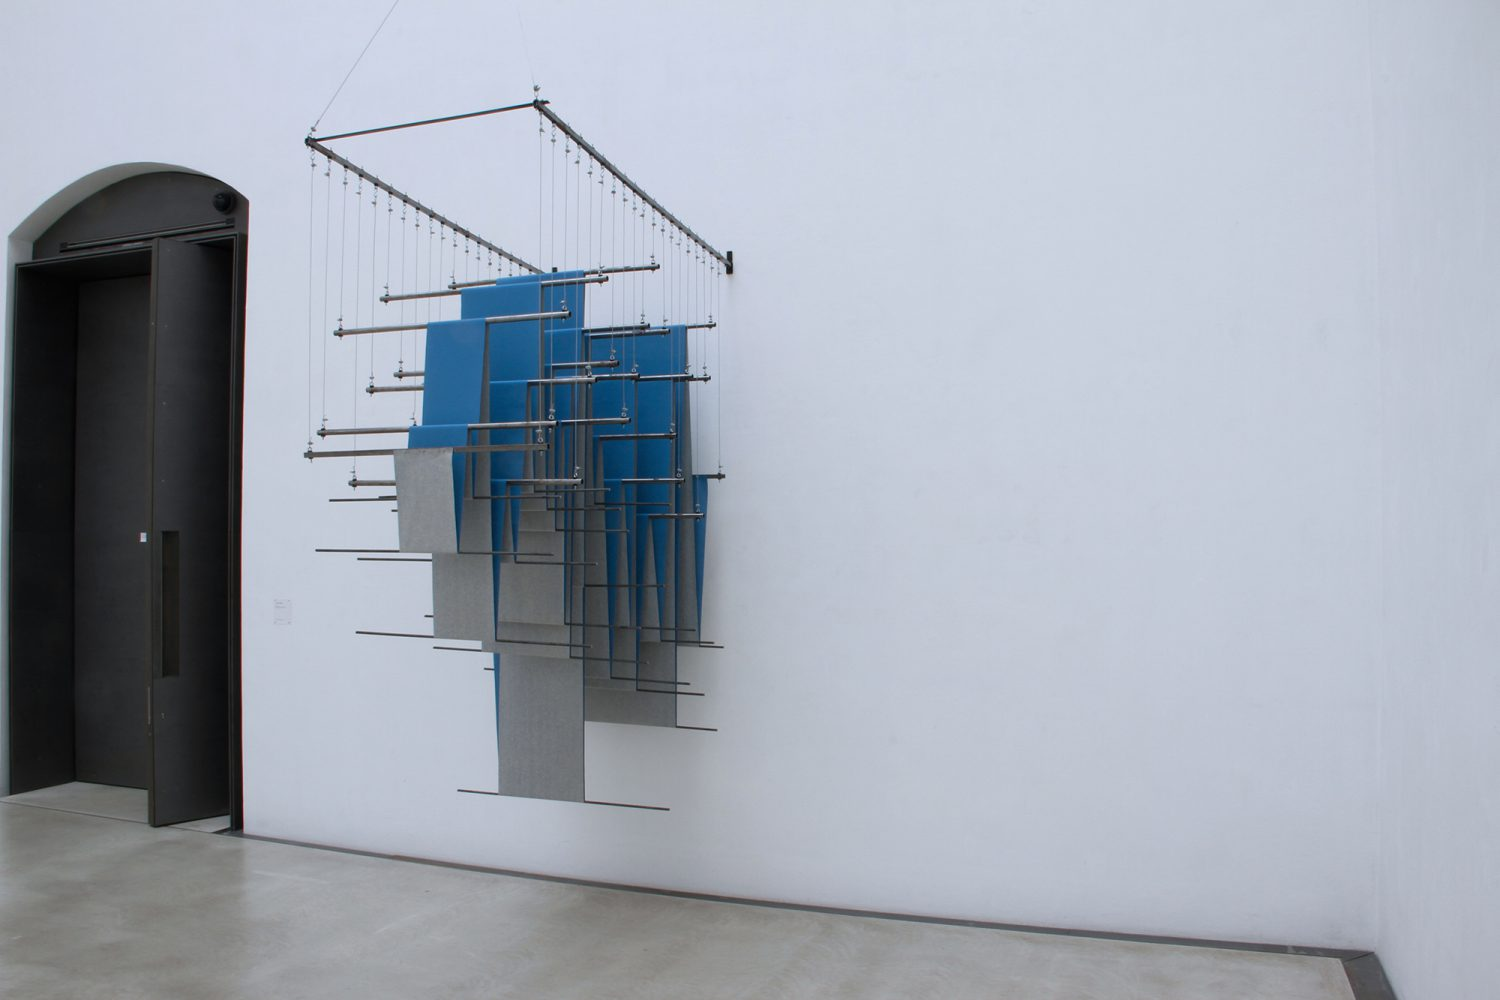 Christian Rätsch - Untitled (blue & grey) - 2012 - book binding linen, pipes, steel wire, rubber, hooks - 350 x 100 x 200 cm